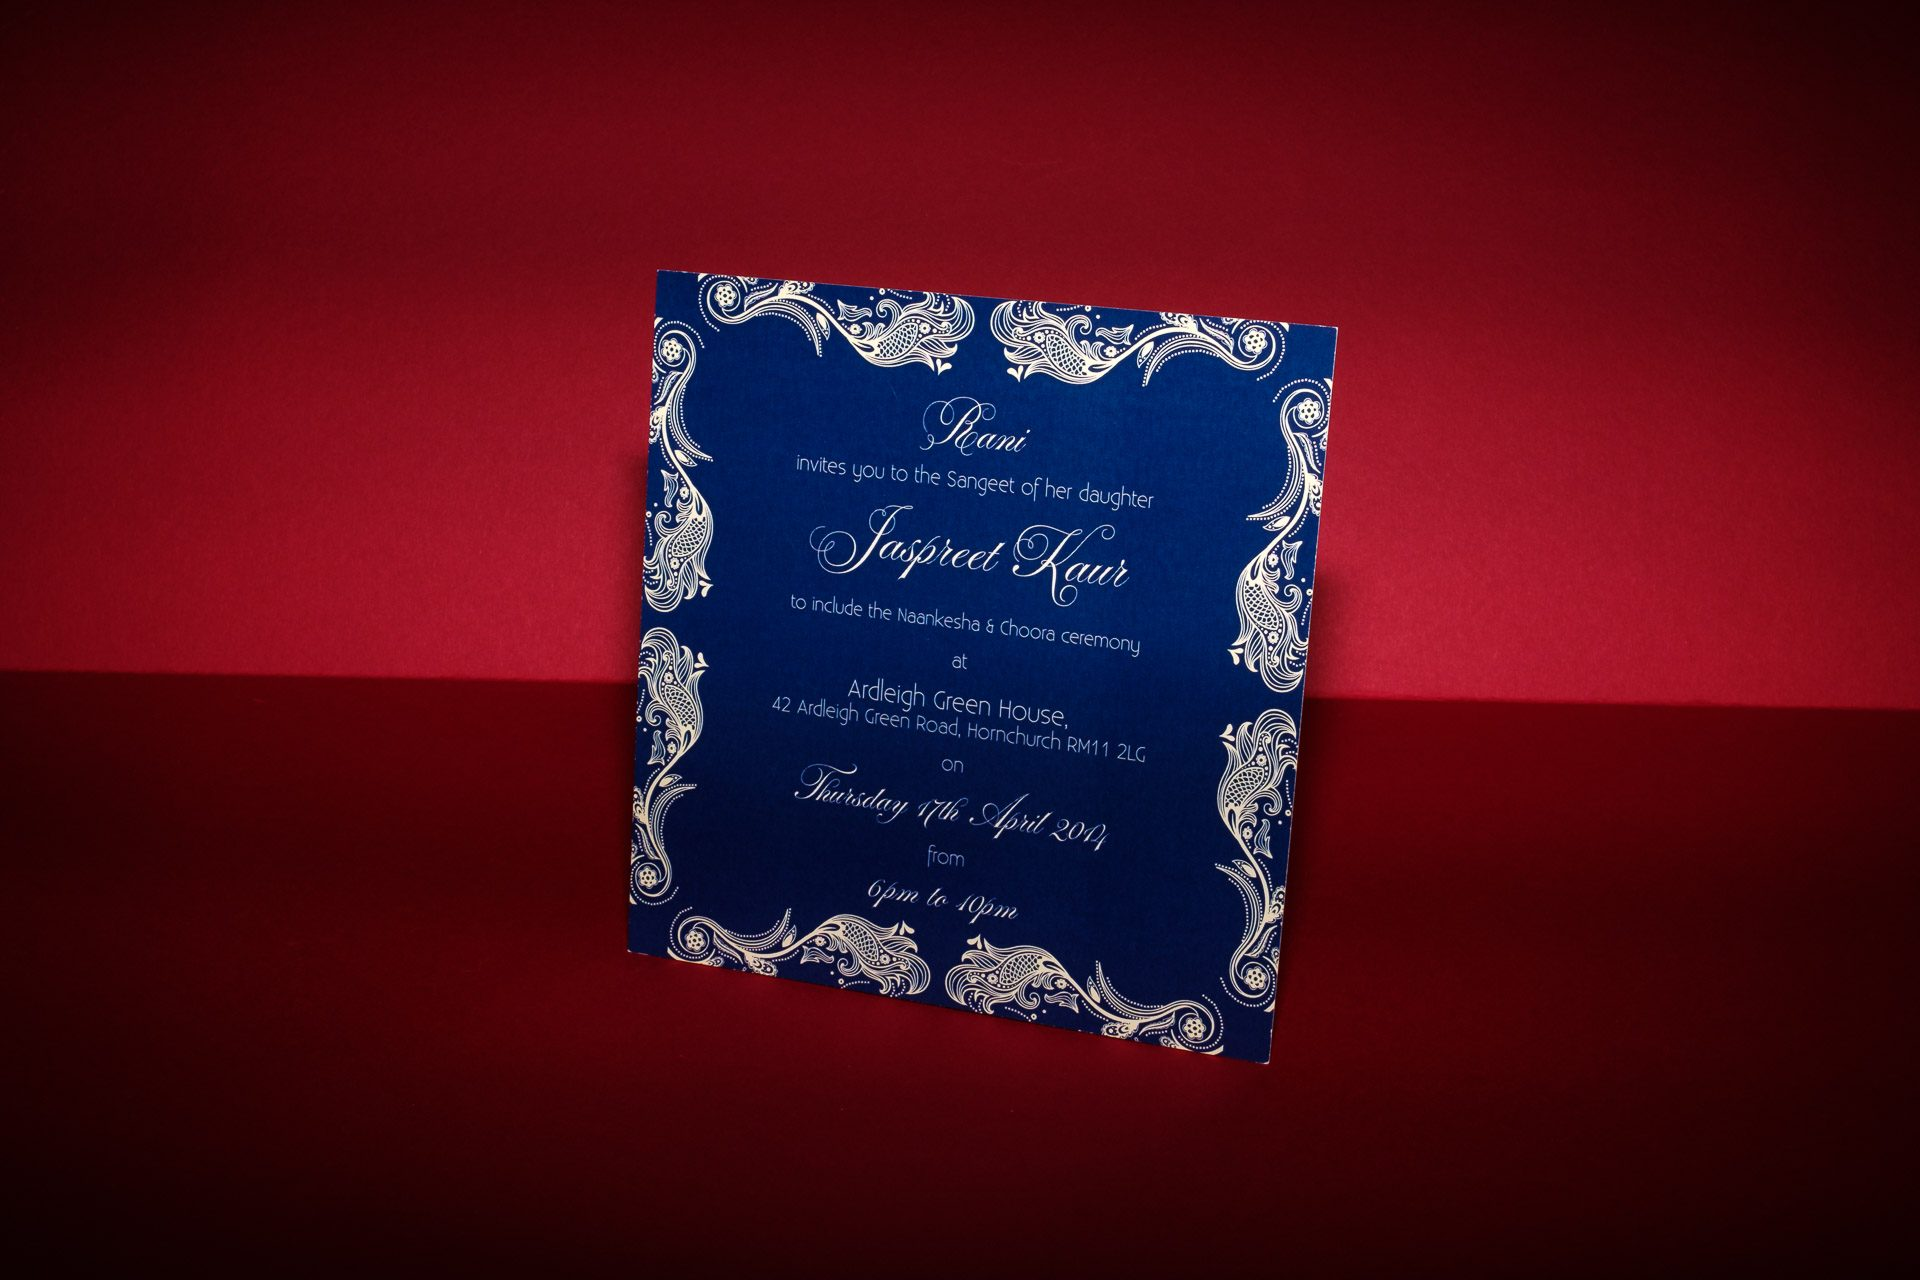 Lord of the Rings and Indian themed wedding stationery